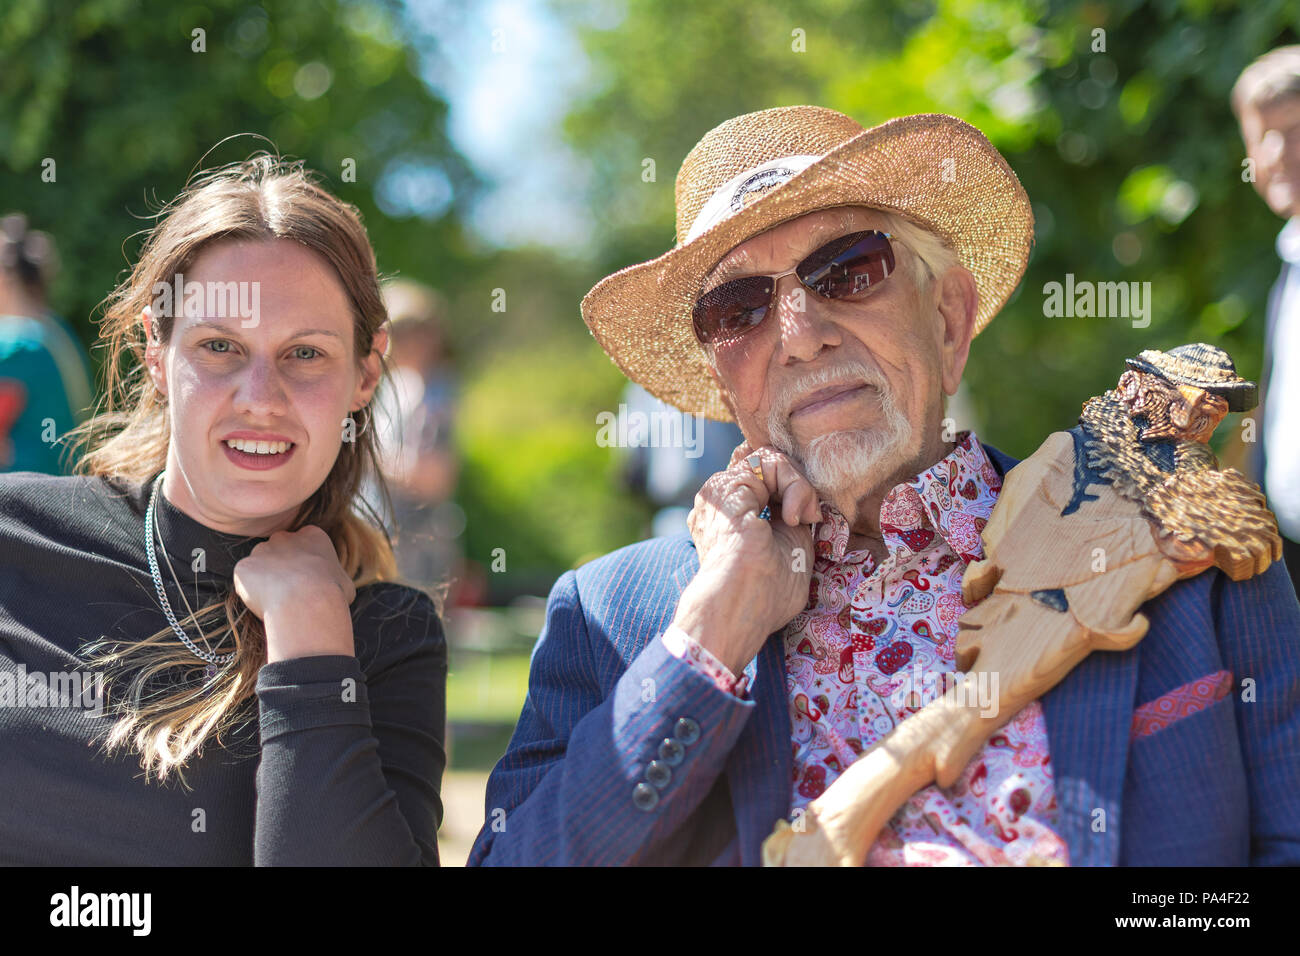 GRISSLEHAMN, SWEDEN, JULY 7th 2018: Closeup of the Albert Engström award winners 2018, Owe Thörnqvist and Ester Eriksson during a sunny day at Engströ - Stock Image